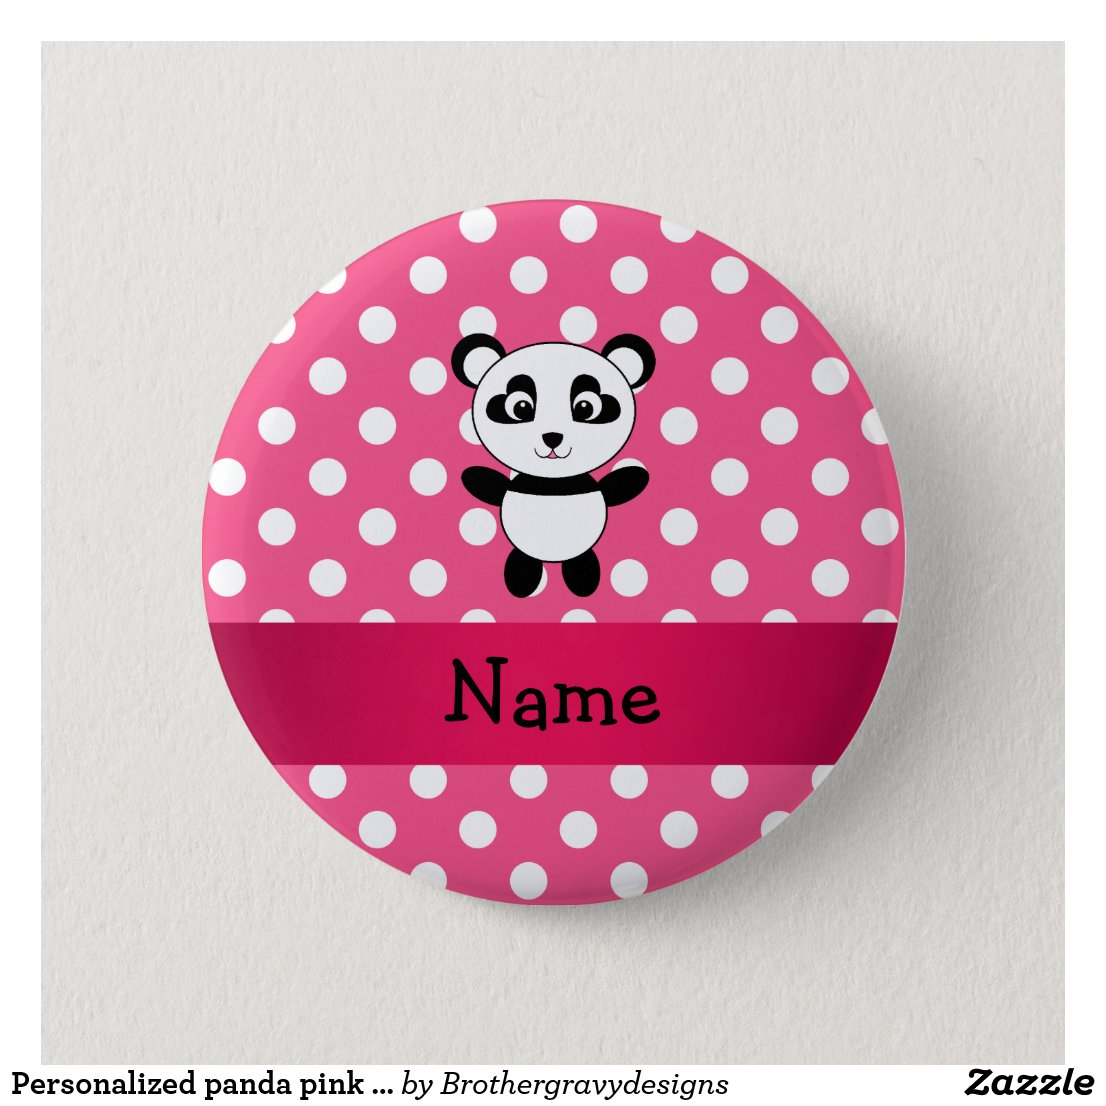 Panda polka dot badge